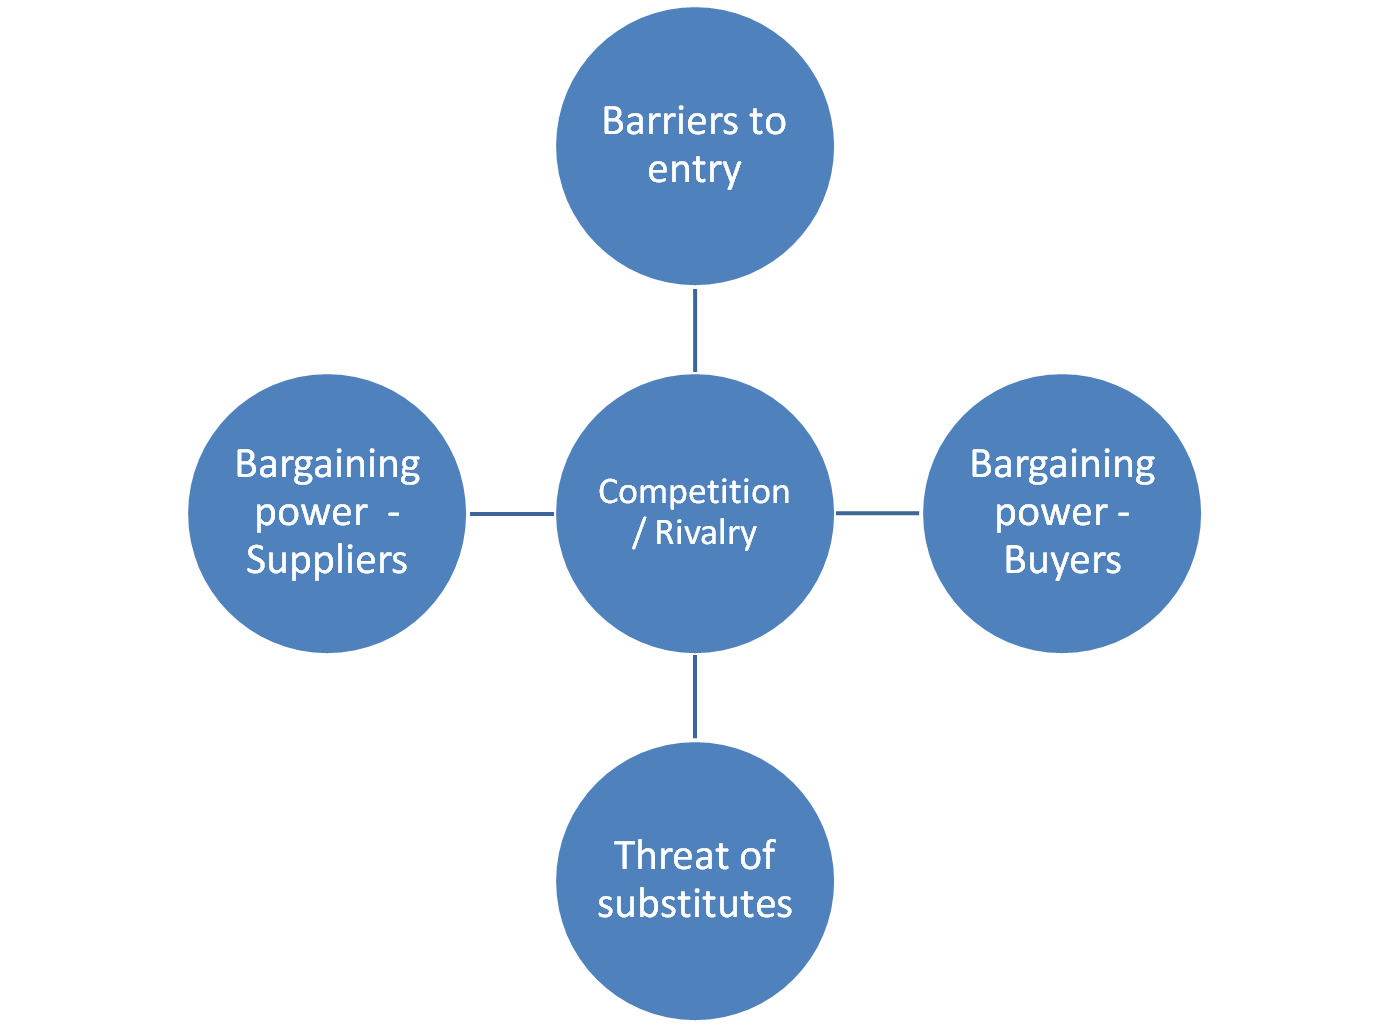 porters 5 forces analysis Porter identifies five forces that shape every industry and which determine the intensity and direction of competition and therefore the profitability of an industry the objective of strategic planning is to modify these competitive forces such that the organization's position is improved.